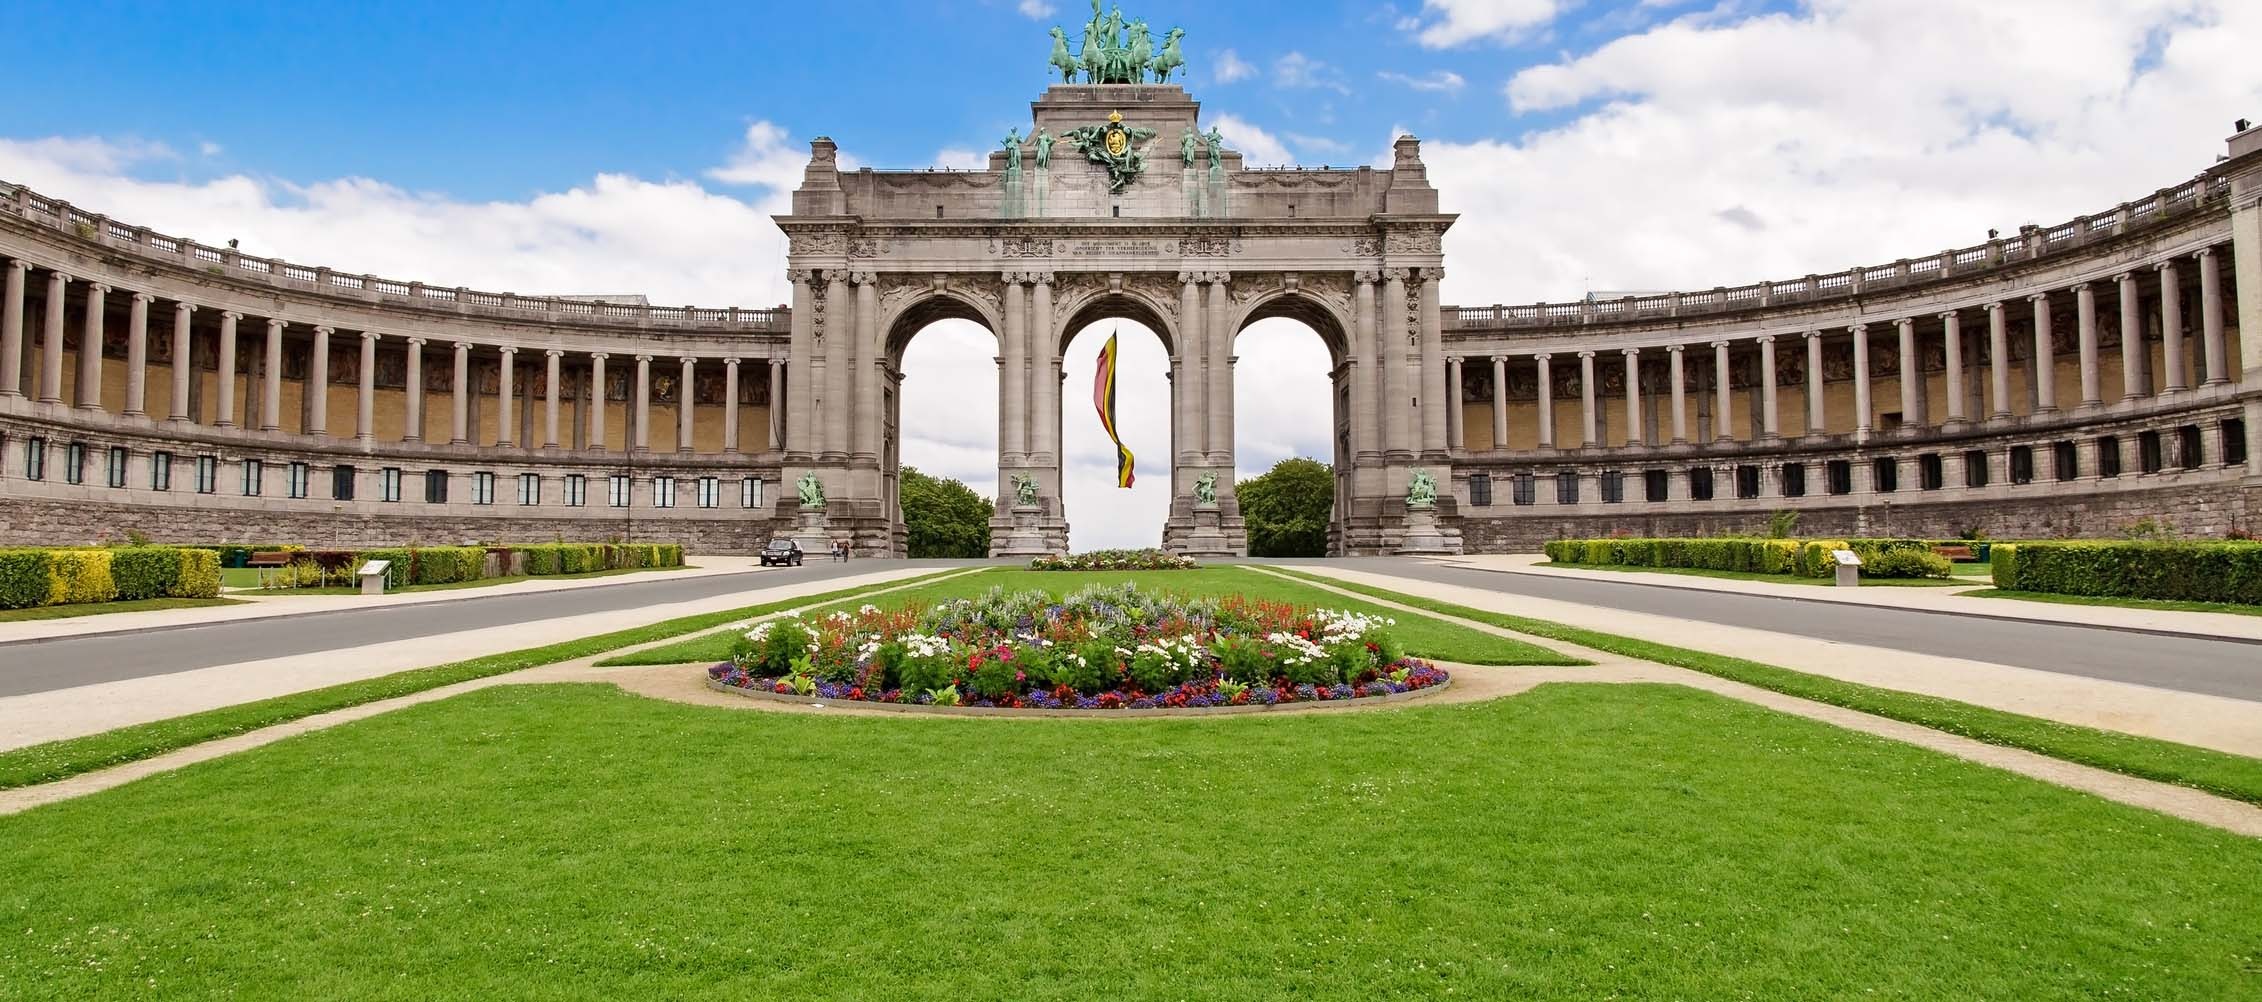 The Triumphal Arch in Cinquantenaire Parc in Brussels, Belgium, where ICPS 2021 will be held